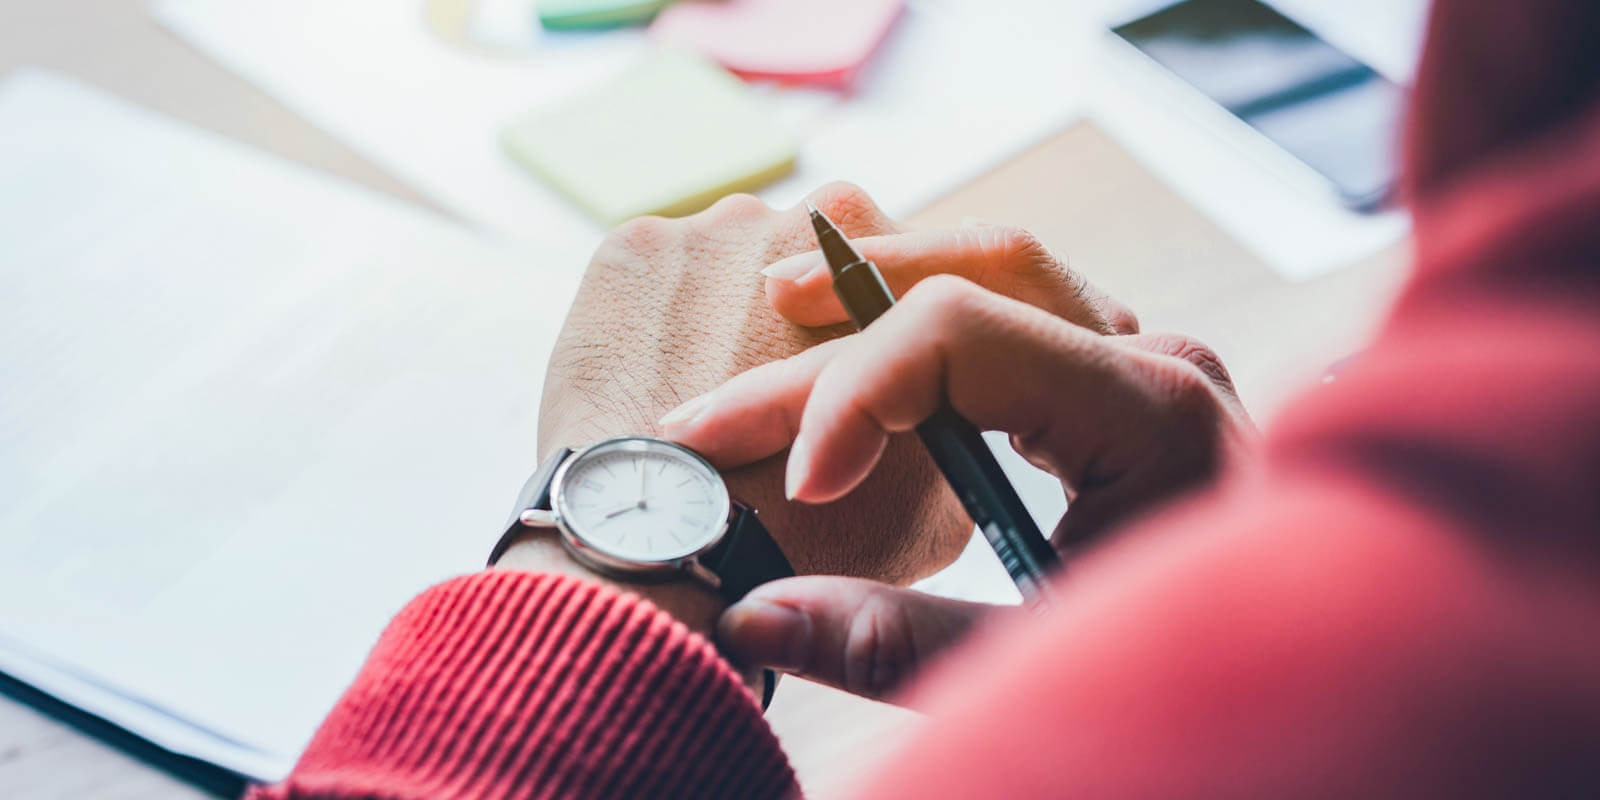 Time Management Advice That Can Really Help